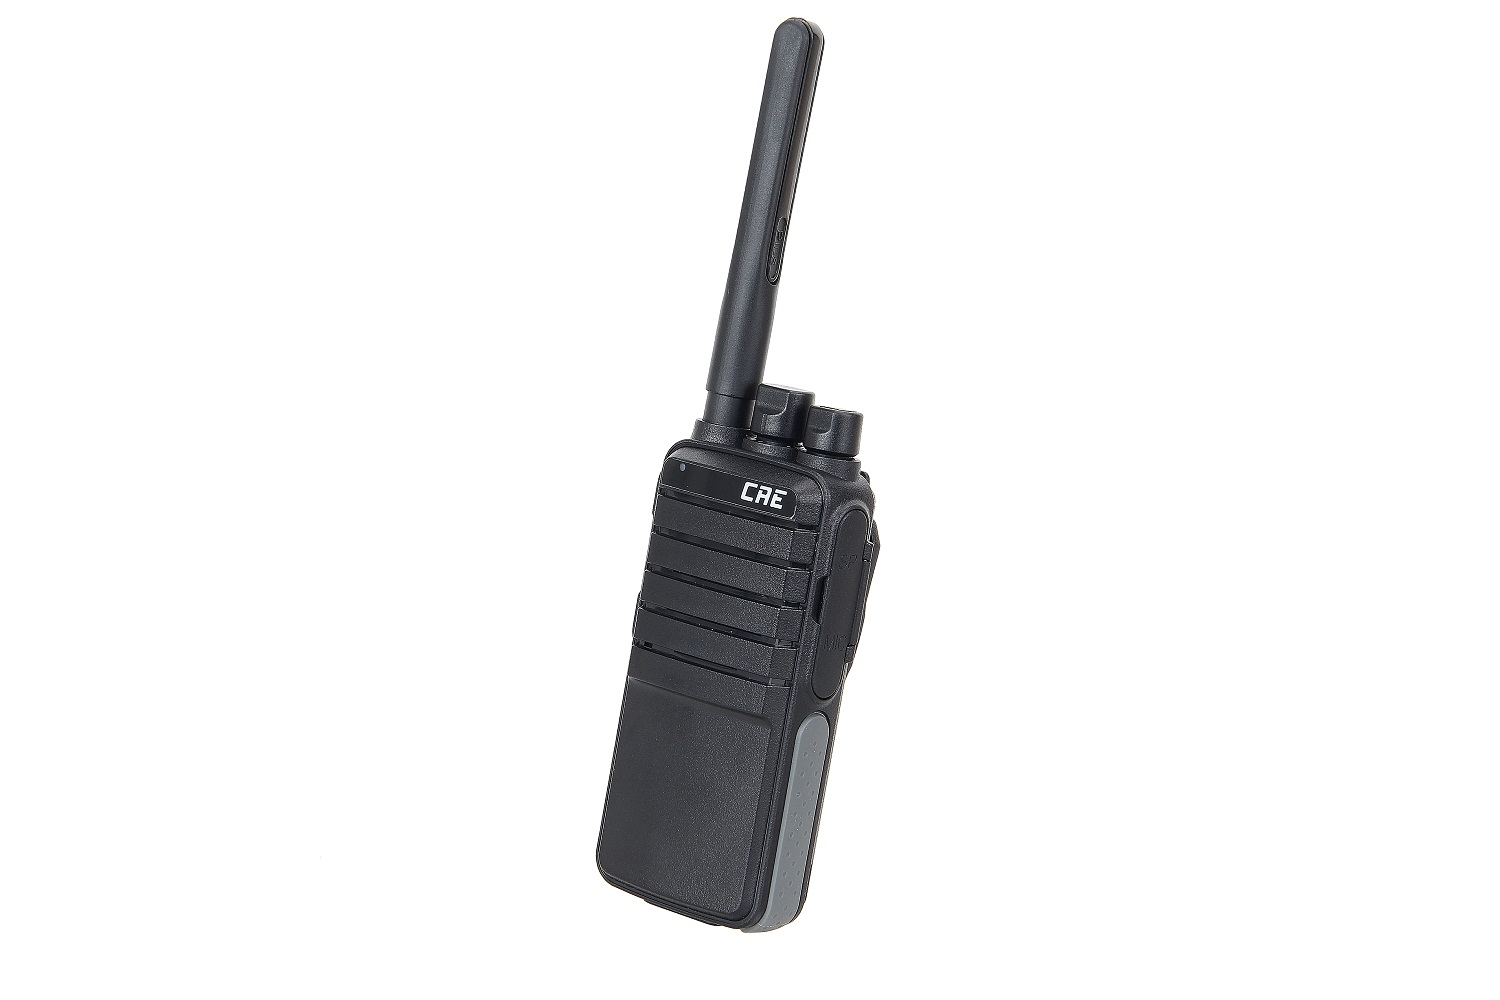 DPMR DMR Analog walkie talkie D518